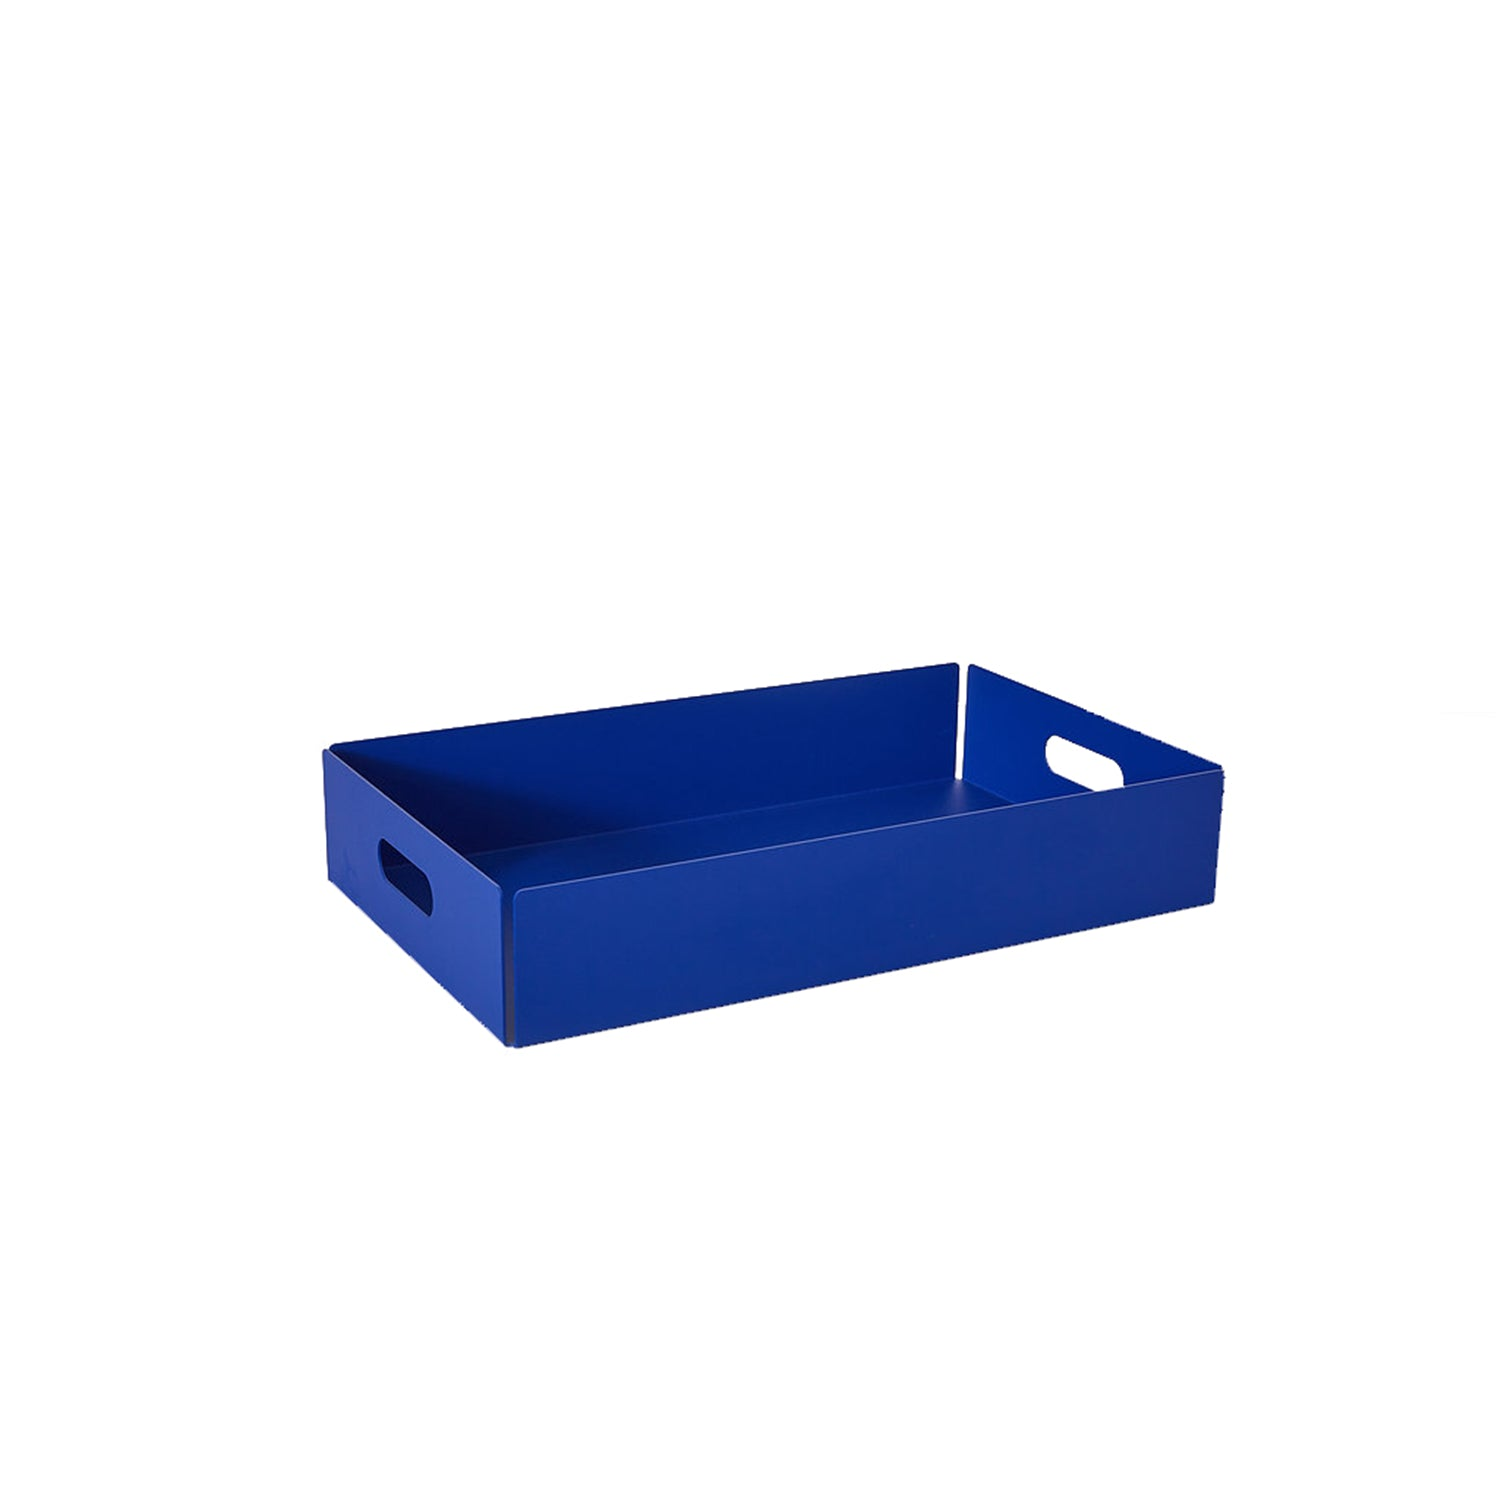 Metal Dowel Basket: Small + Ultramarine Blue